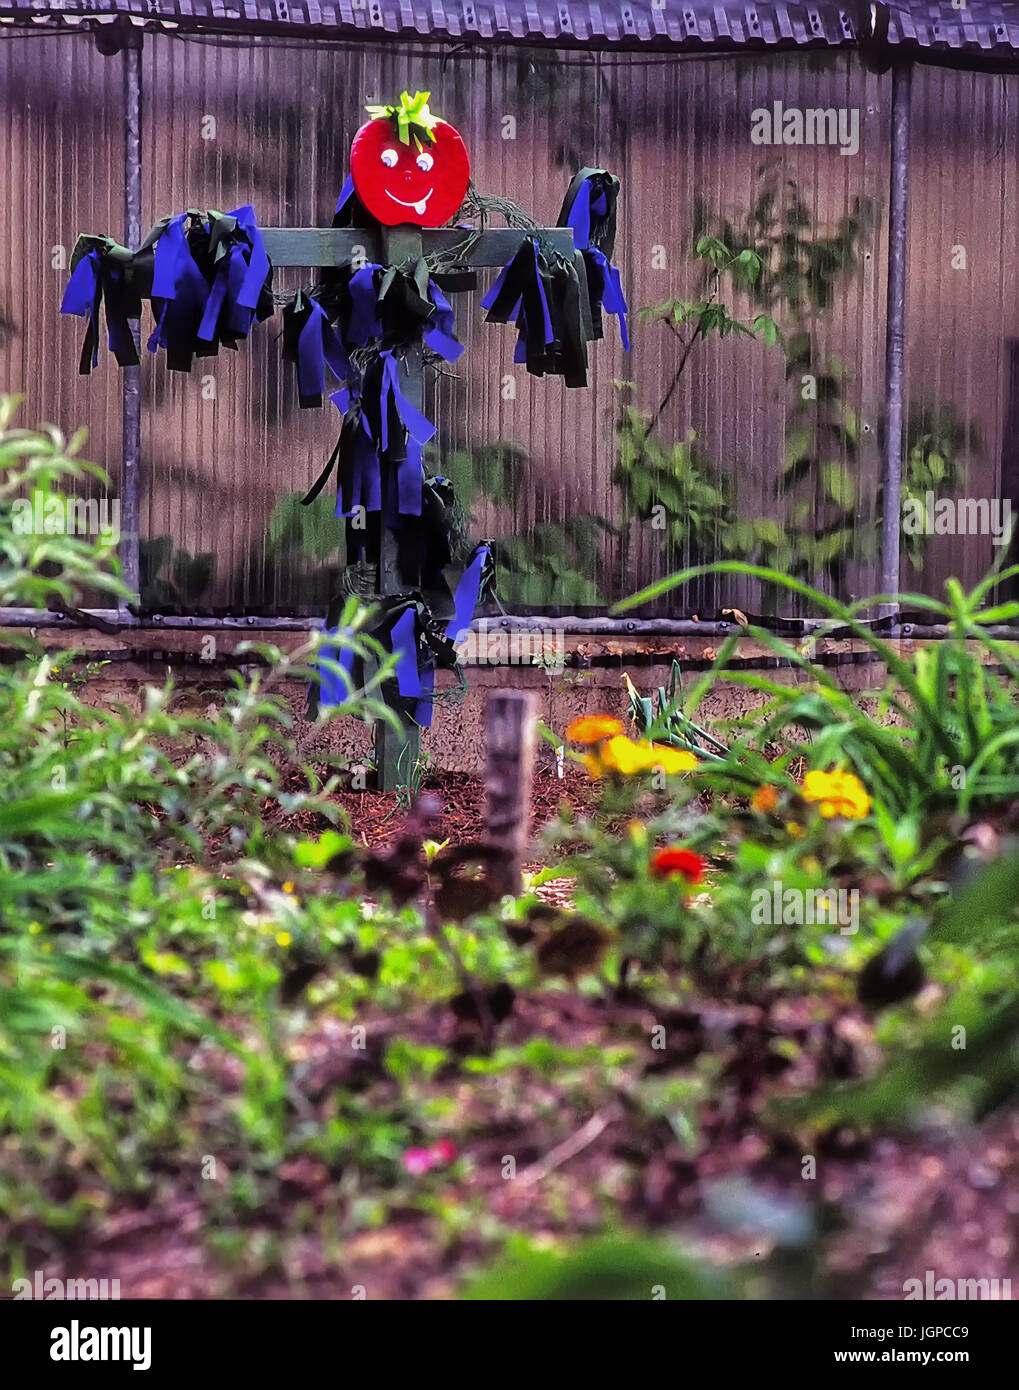 Scare crow in garden, colorful - Stock Image